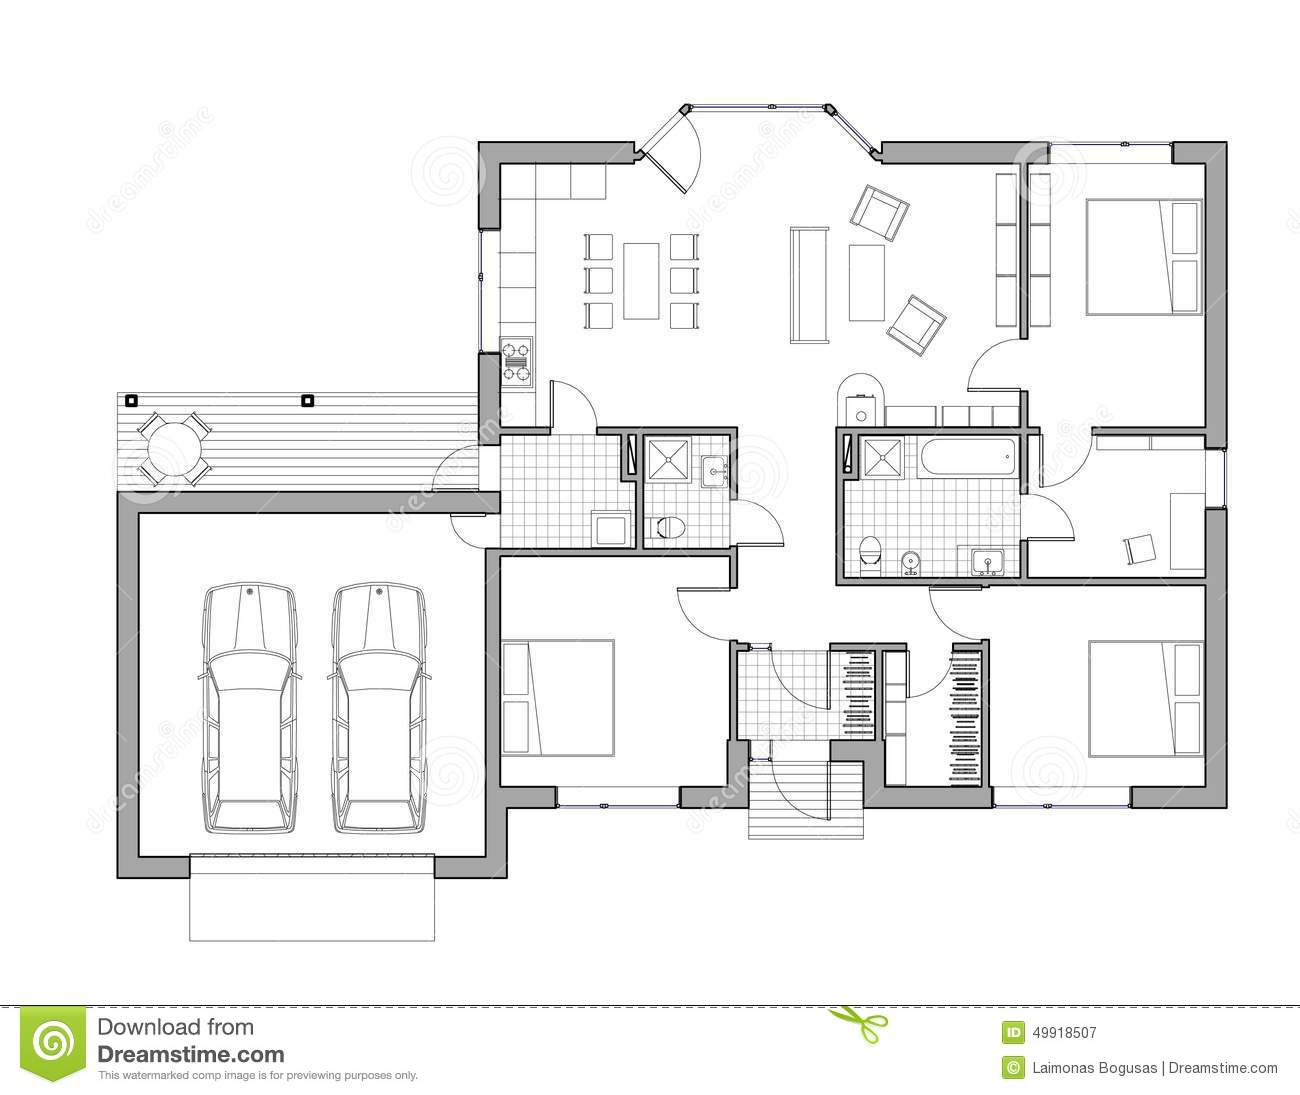 Dessin maison unifamiliale illustration stock image for Dessin plan architecture